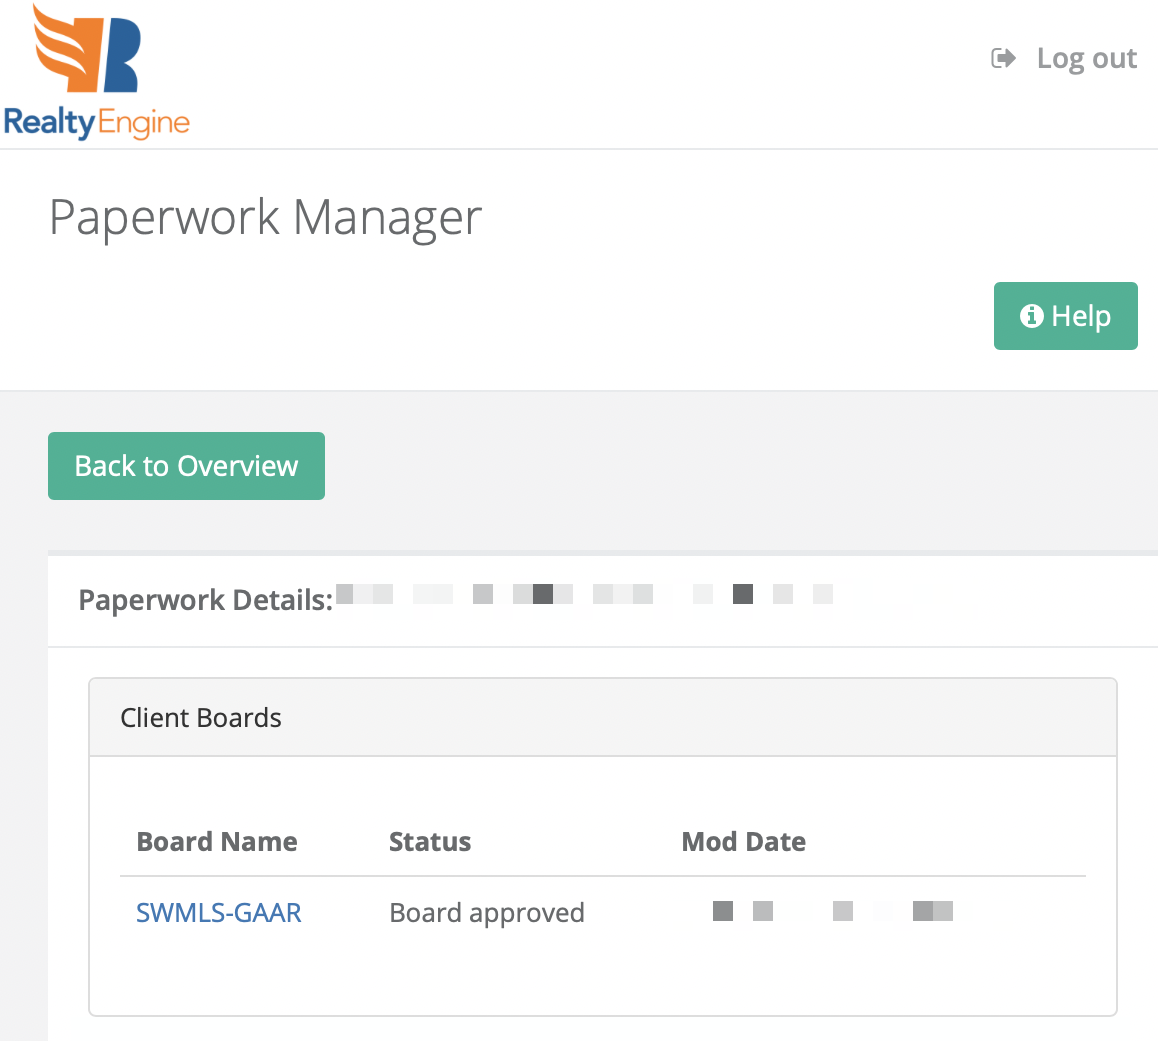 IDX Paperwork Manager by RealtyEngine